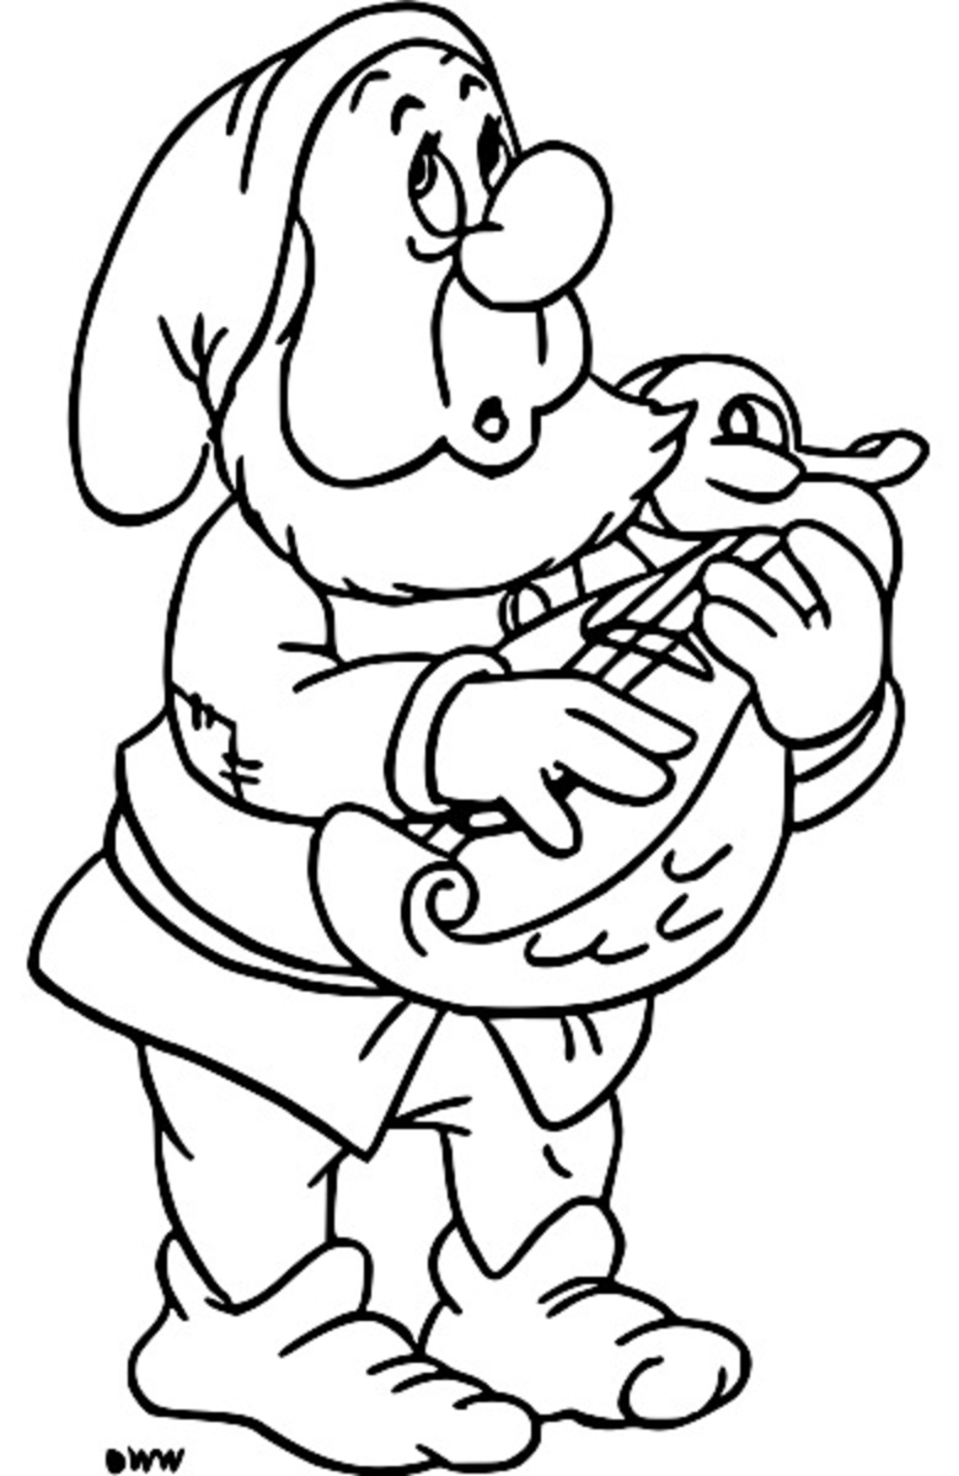 Snow White Disney Sneezy Coloring Page 04